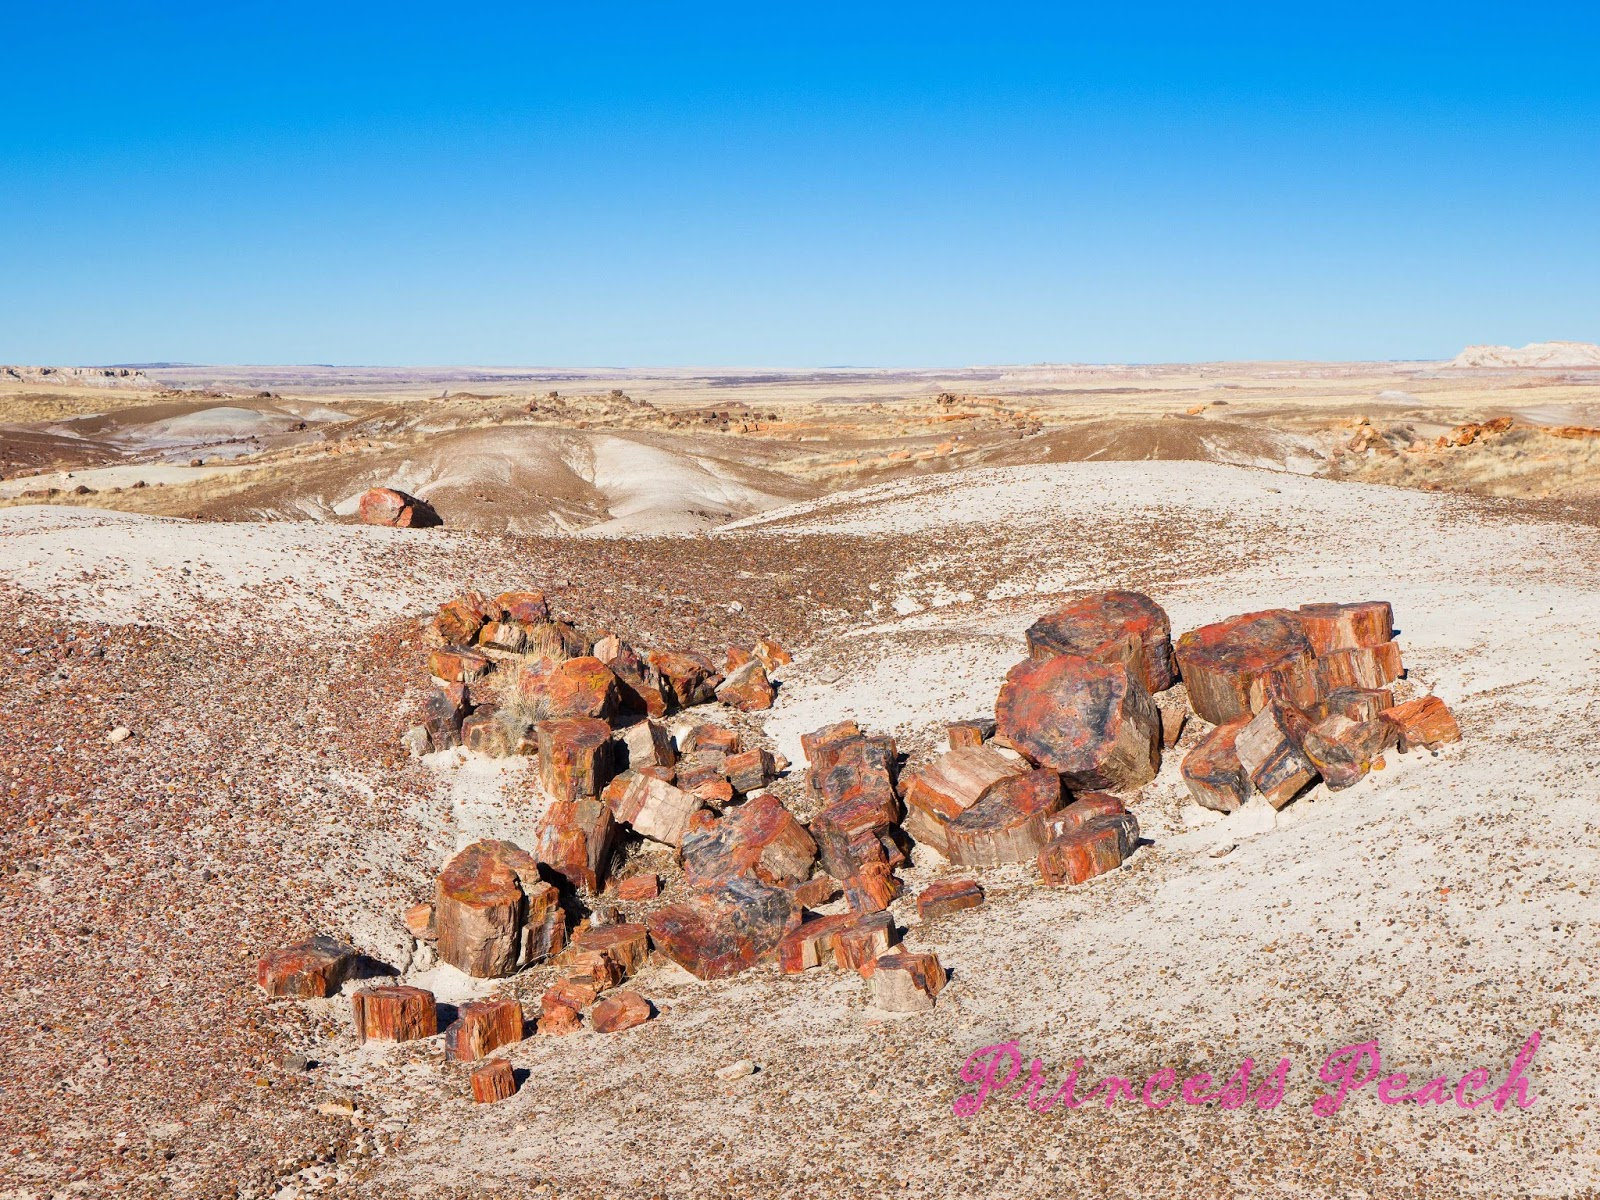 Petrified-Forest-National-Park-石化森林國家公園-Petrified-wood